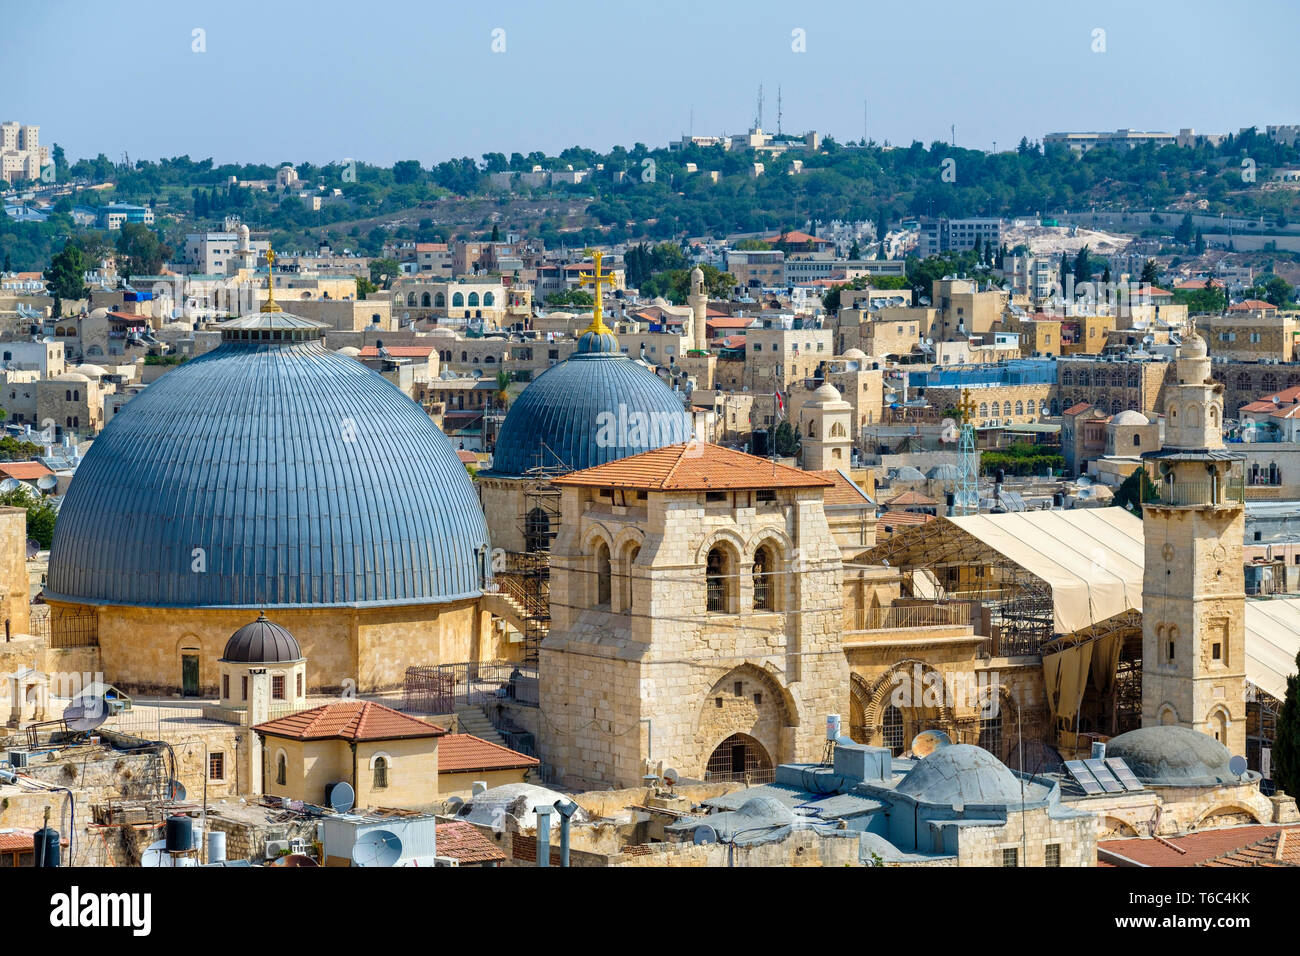 Israel, Jerusalem District, Jerusalem. High-angle view of the Church of the Holy Sepulchre and buildings in the Old City. - Stock Image